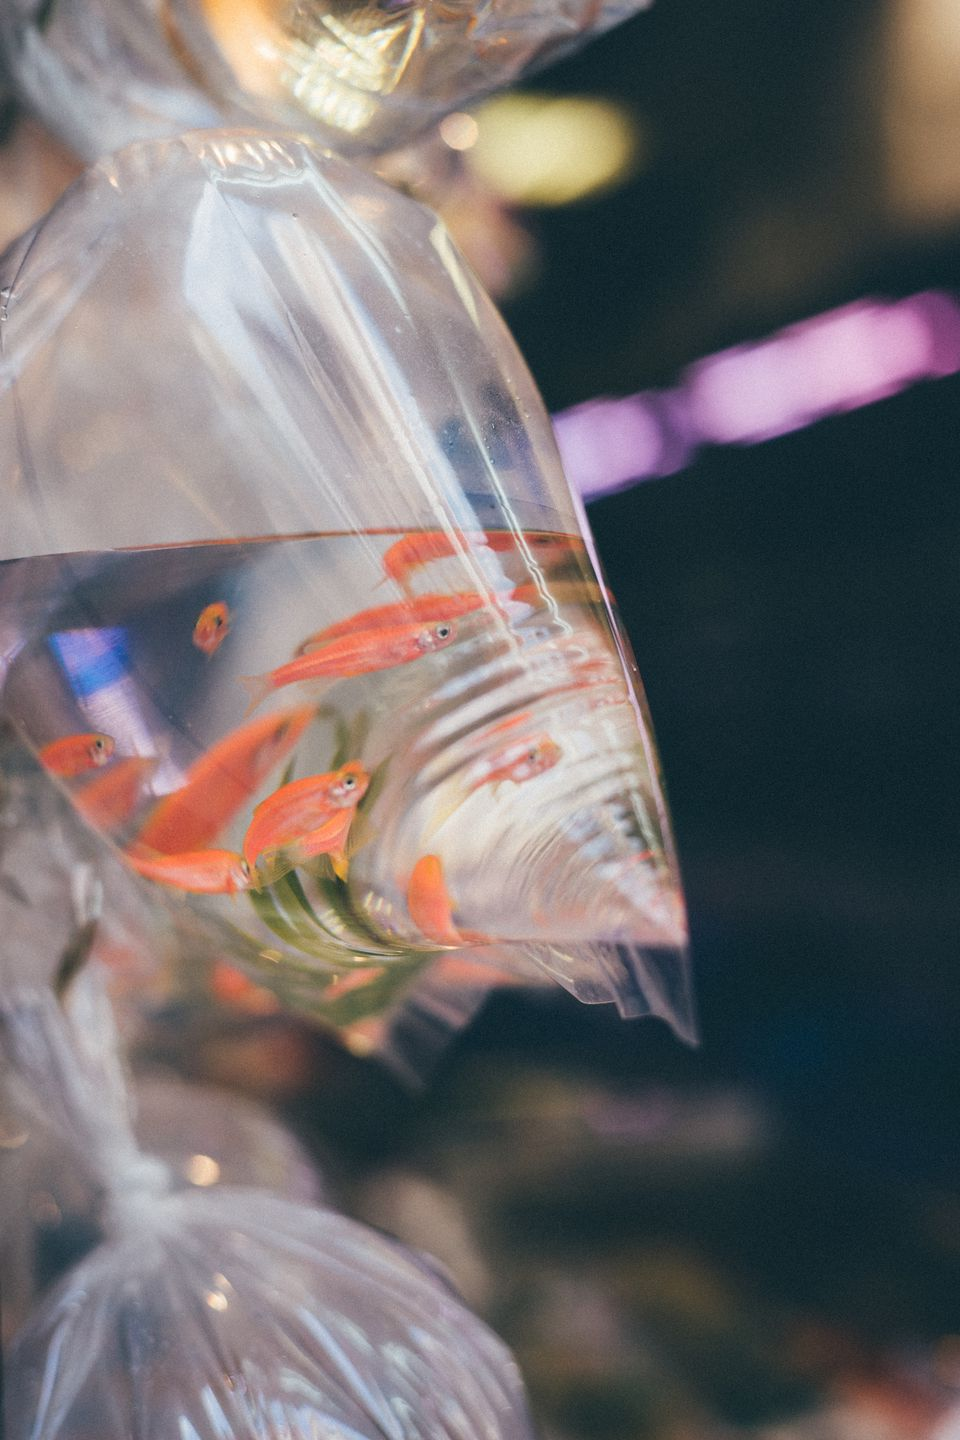 A set of goldfish in water, in a plastic bag